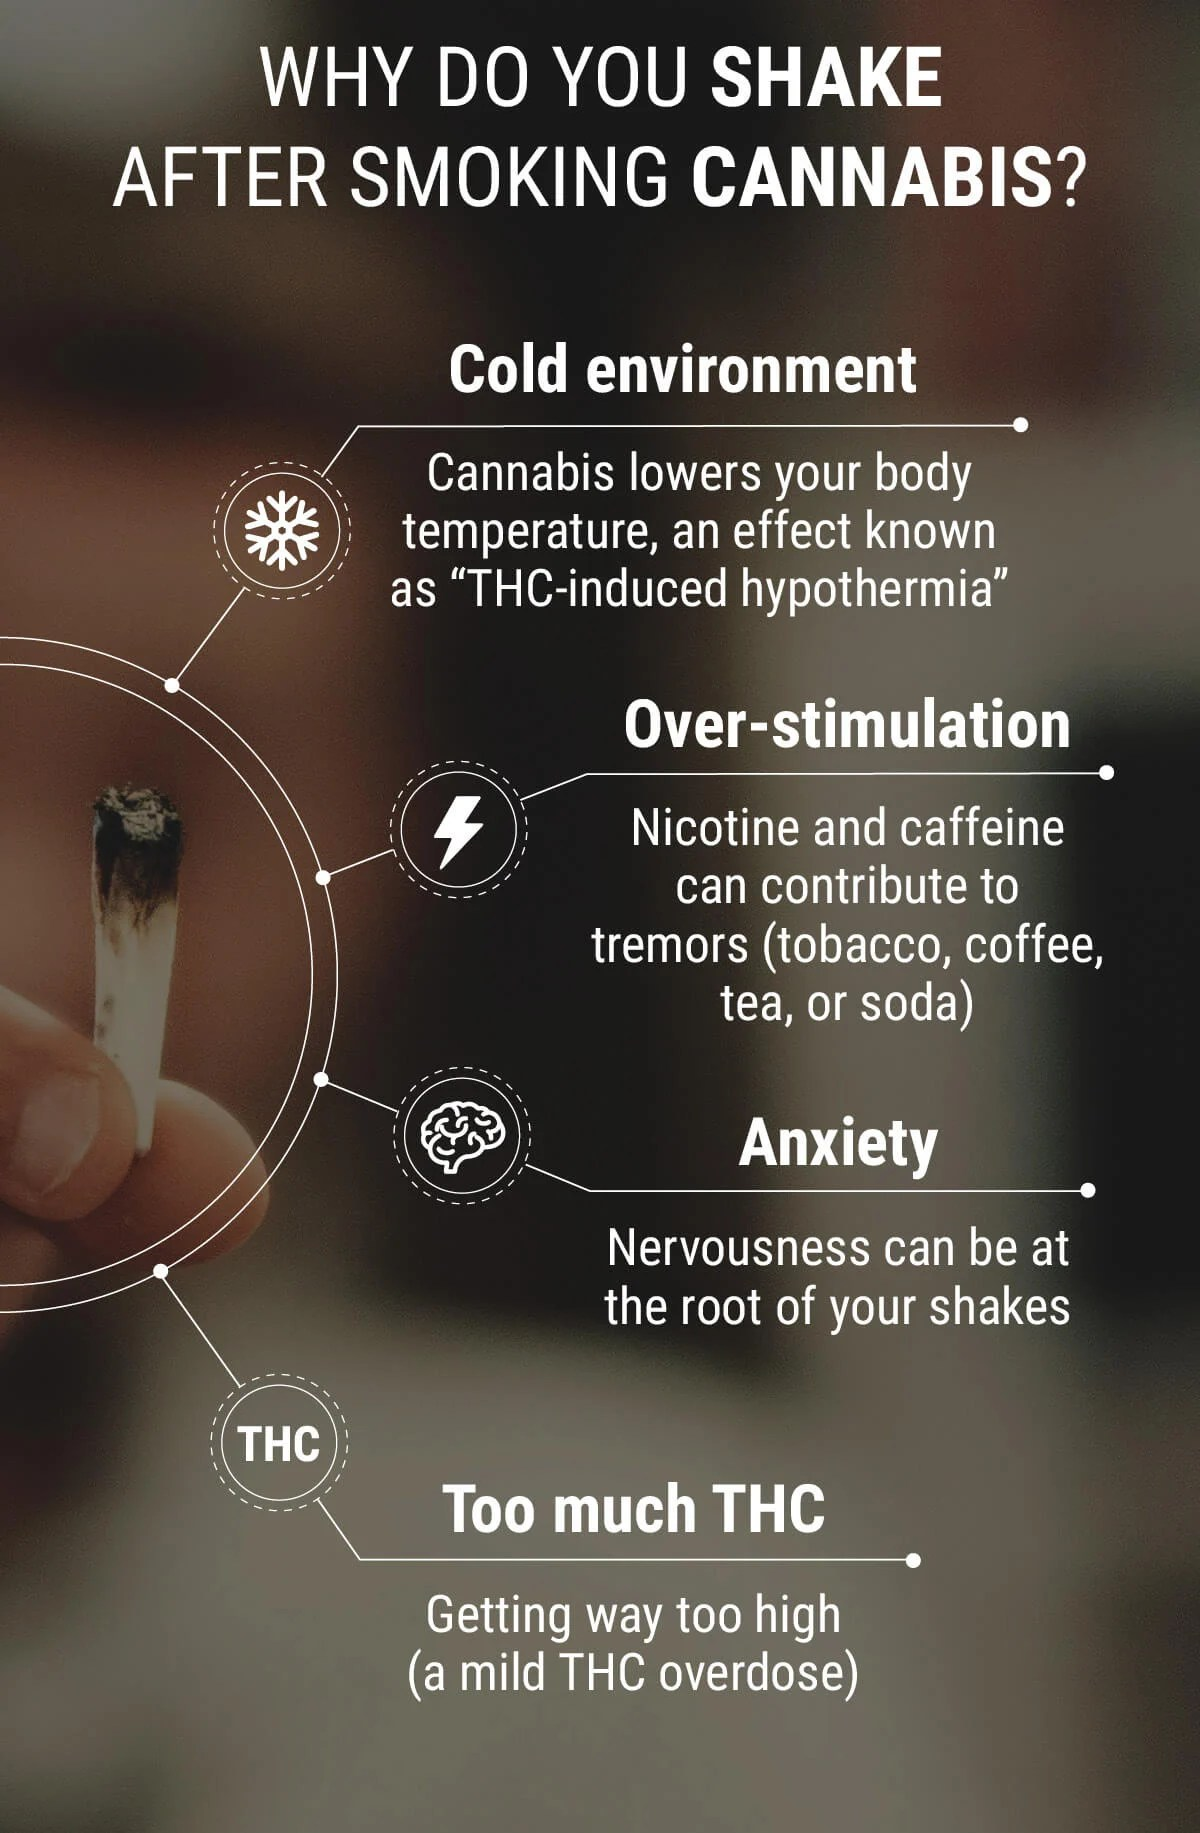 Can You Smoke Weed After Tooth Extraction : smoke, after, tooth, extraction, Cannabis, Shakes, Happen?